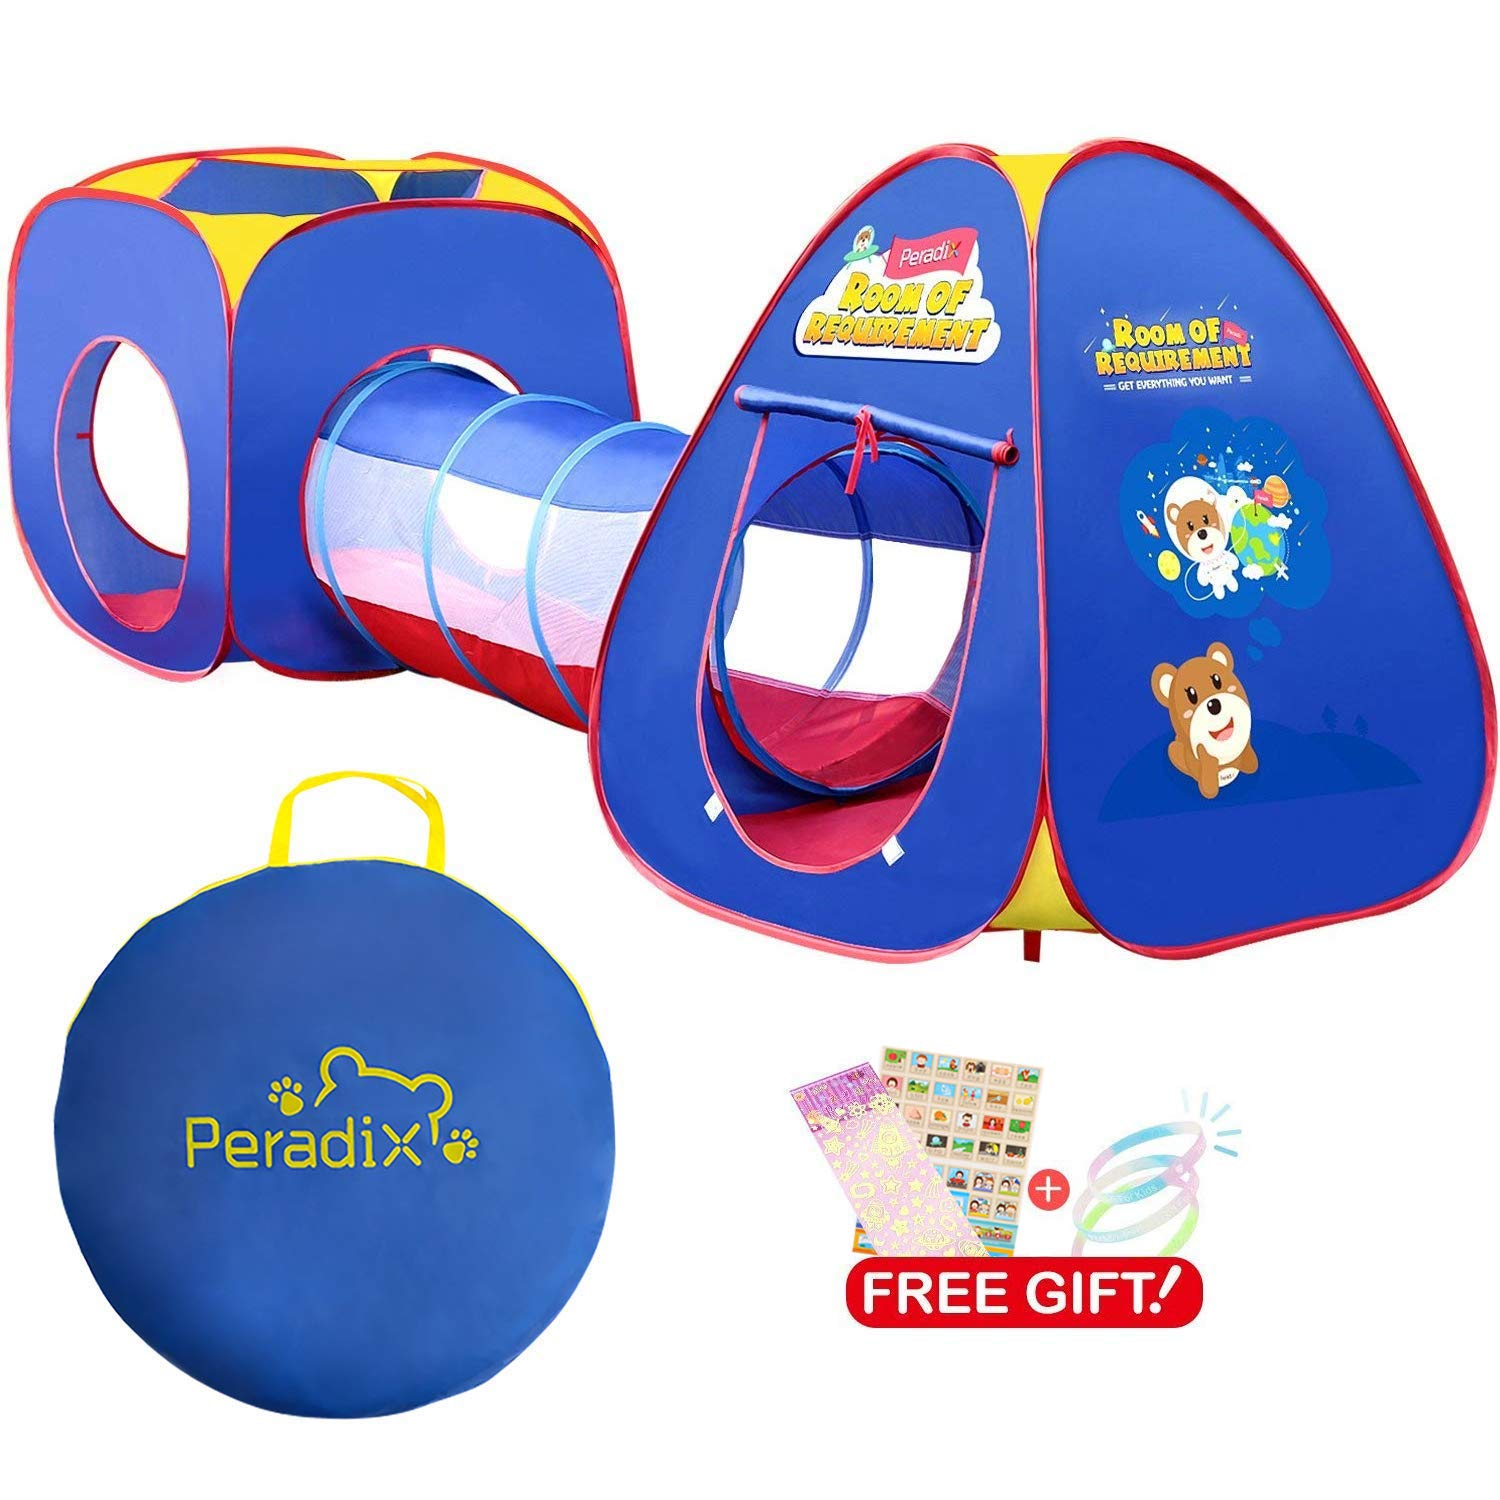 Peradix Baby Kids Play Tunnel Tent, Pop Up Play Tent Tunnel 3 in 1 Ball Pit Tent